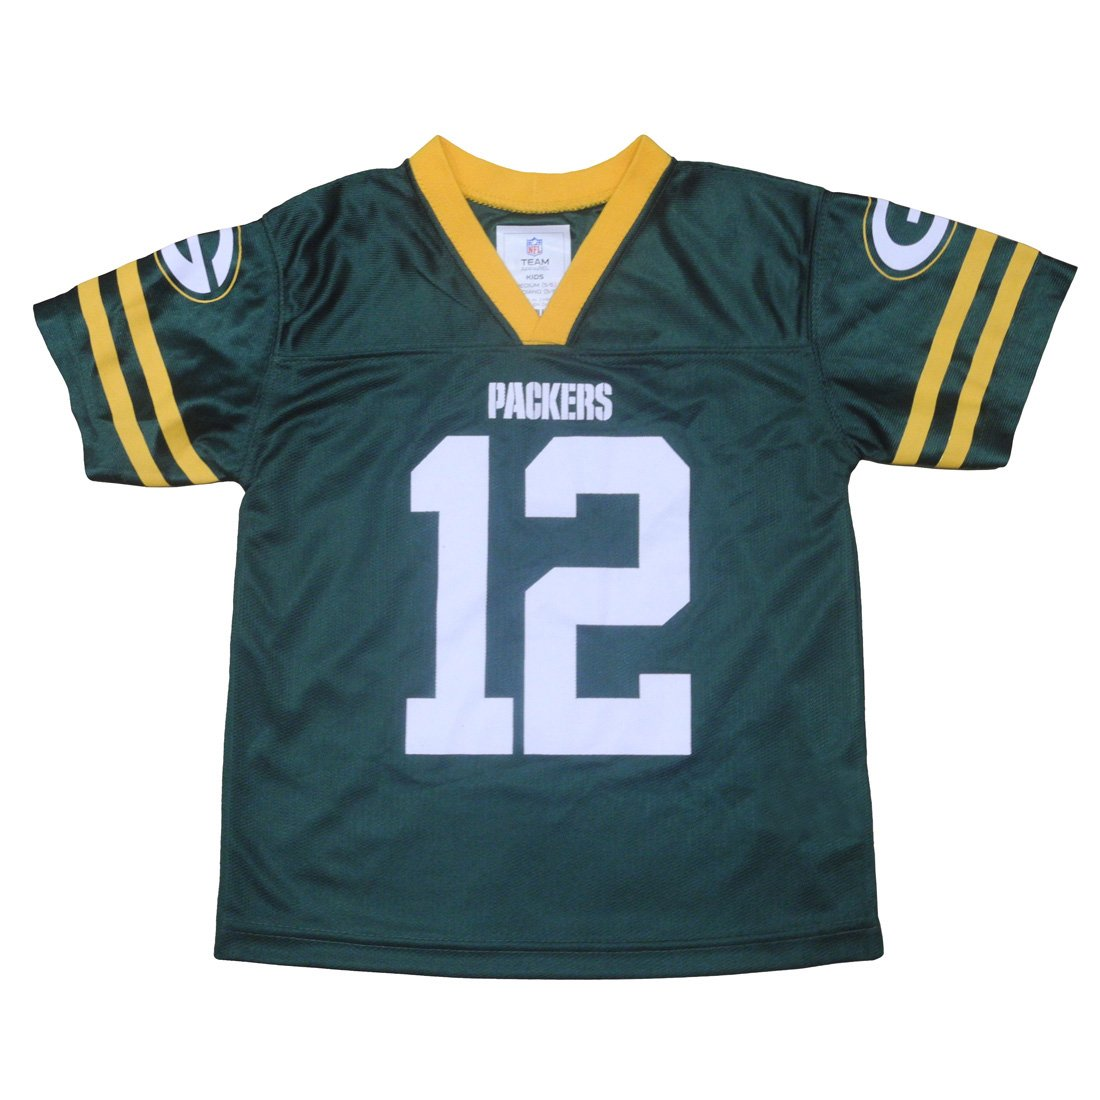 GB Packers Rodger # 12 Boys Athletic Short Sleeve Jersey M(5/6) グリーン B073WPM1B8